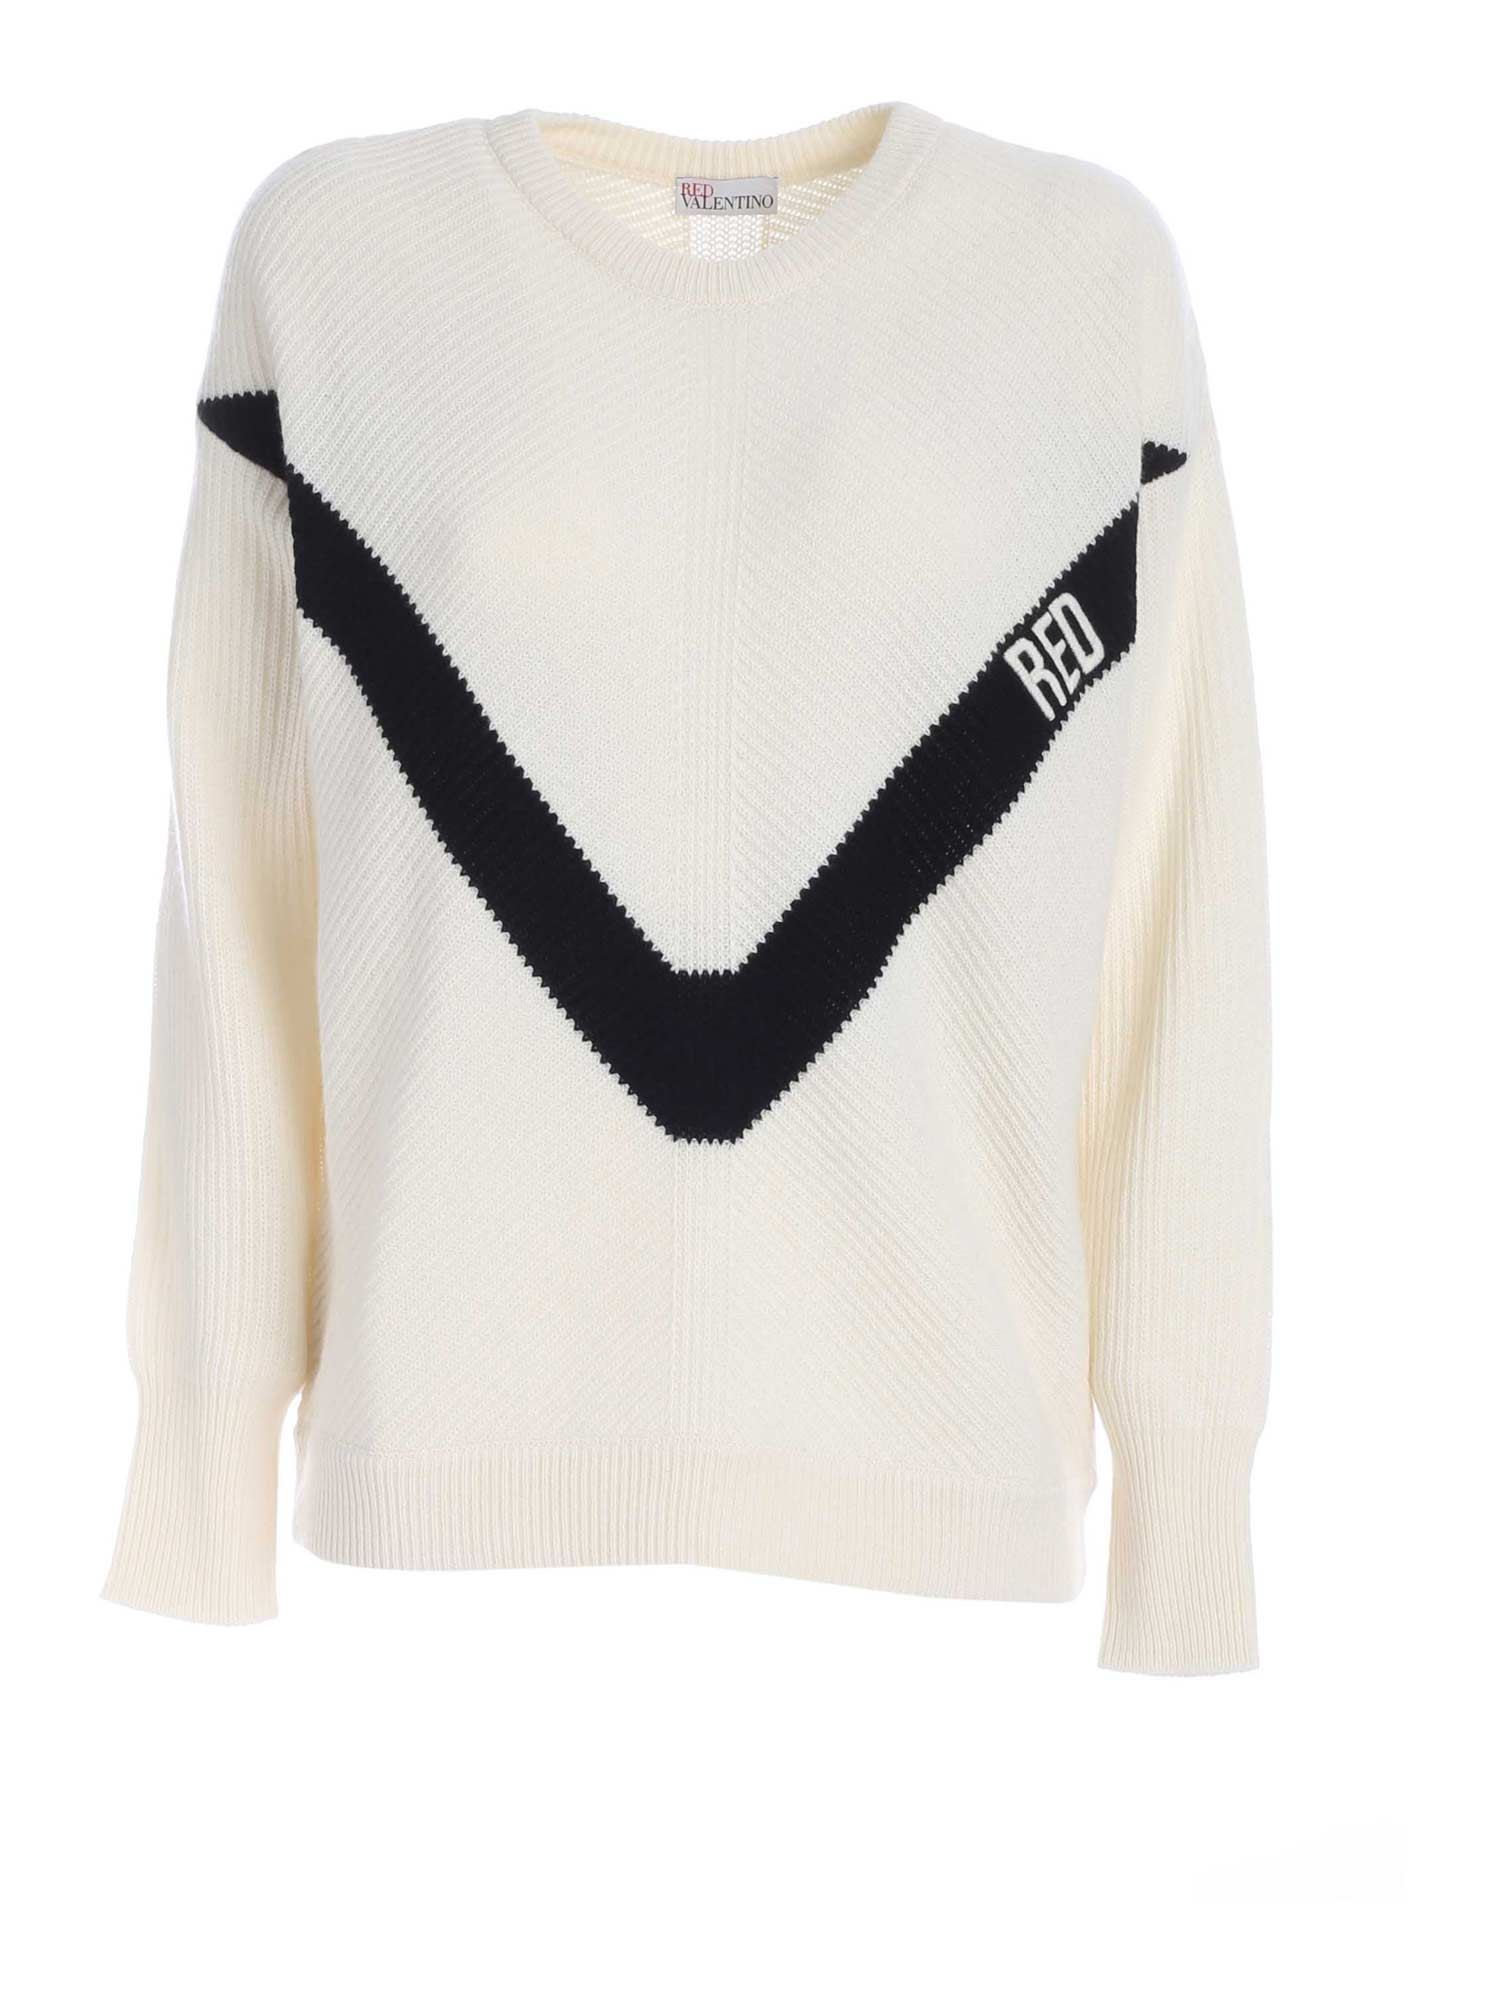 Red Valentino LOGO EMBROIDERED SWEATER IN IVORY